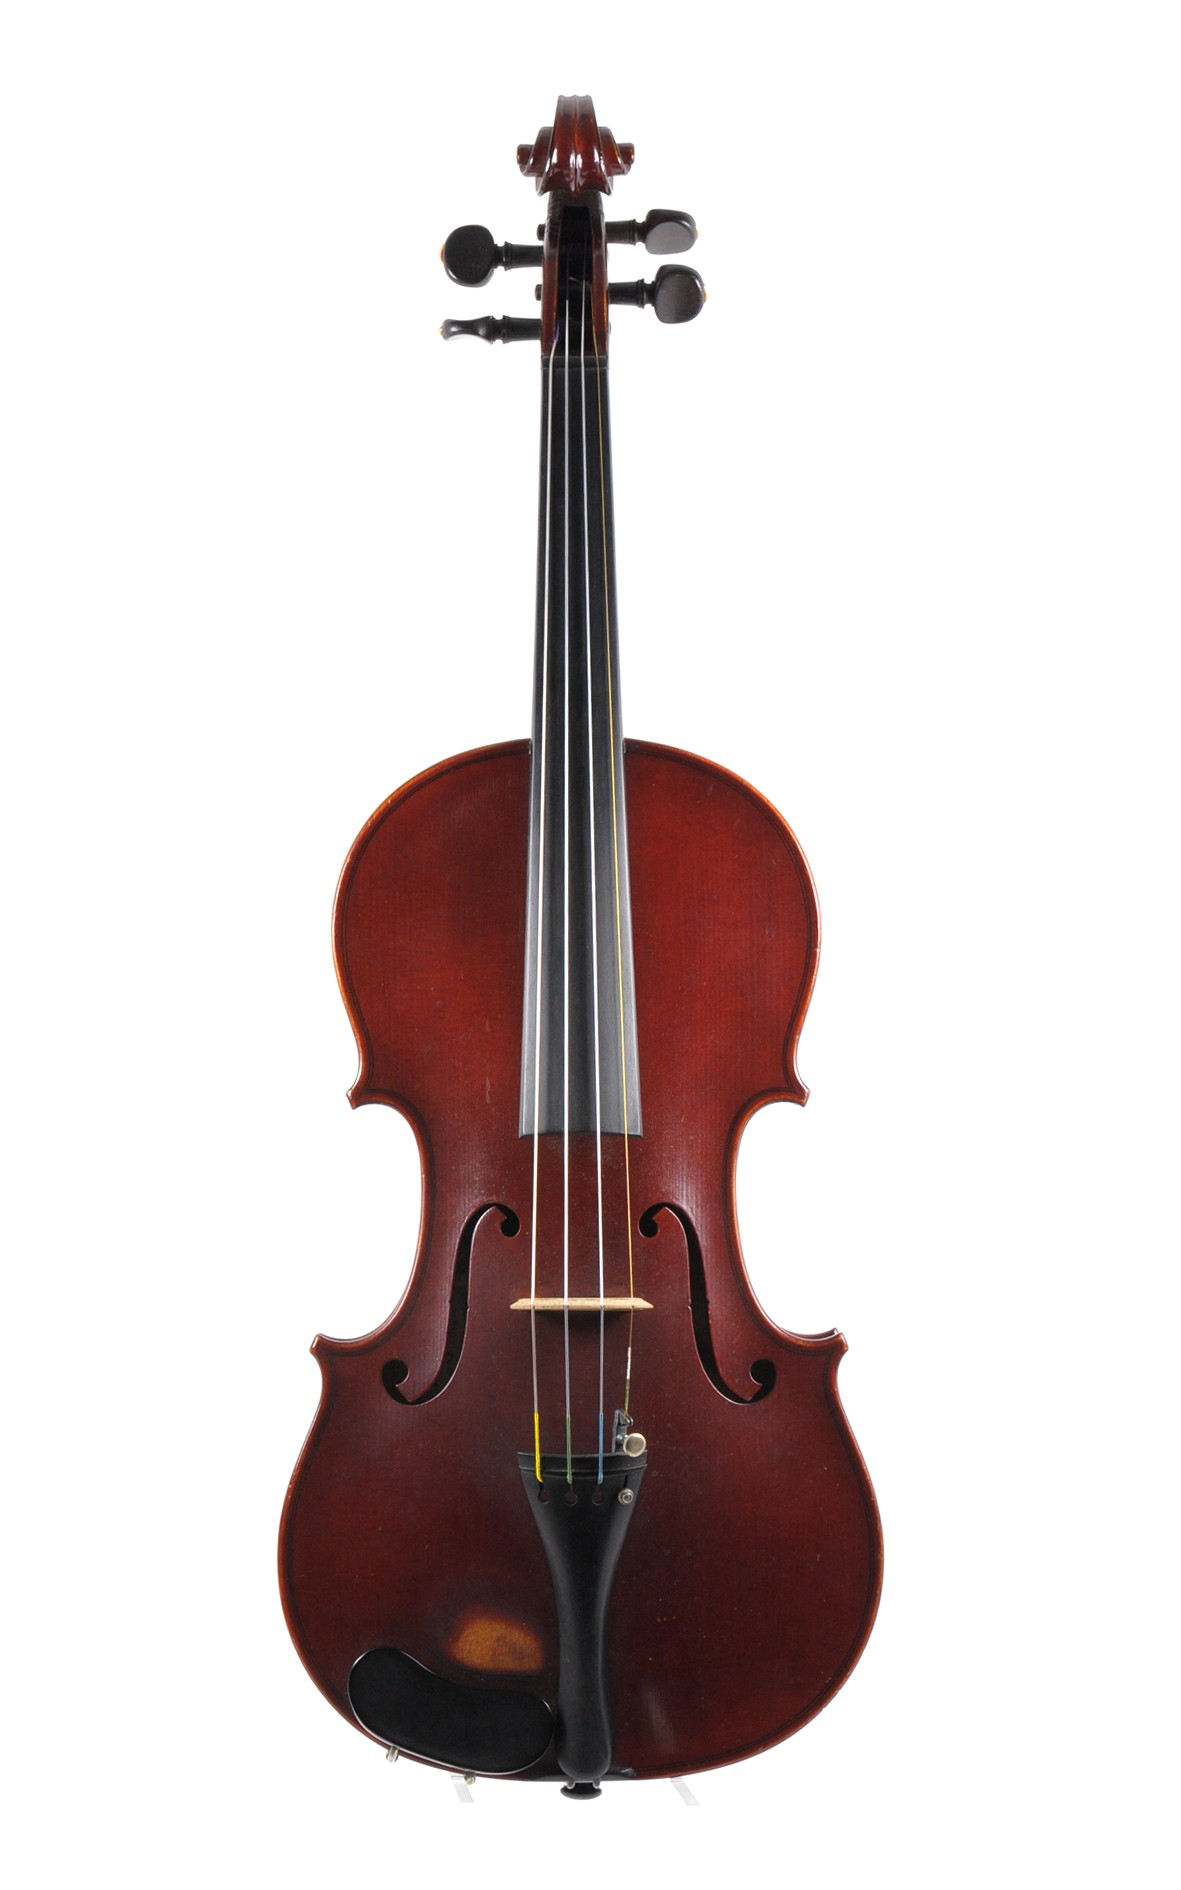 Fine French violin by Pierre Hel, Lille